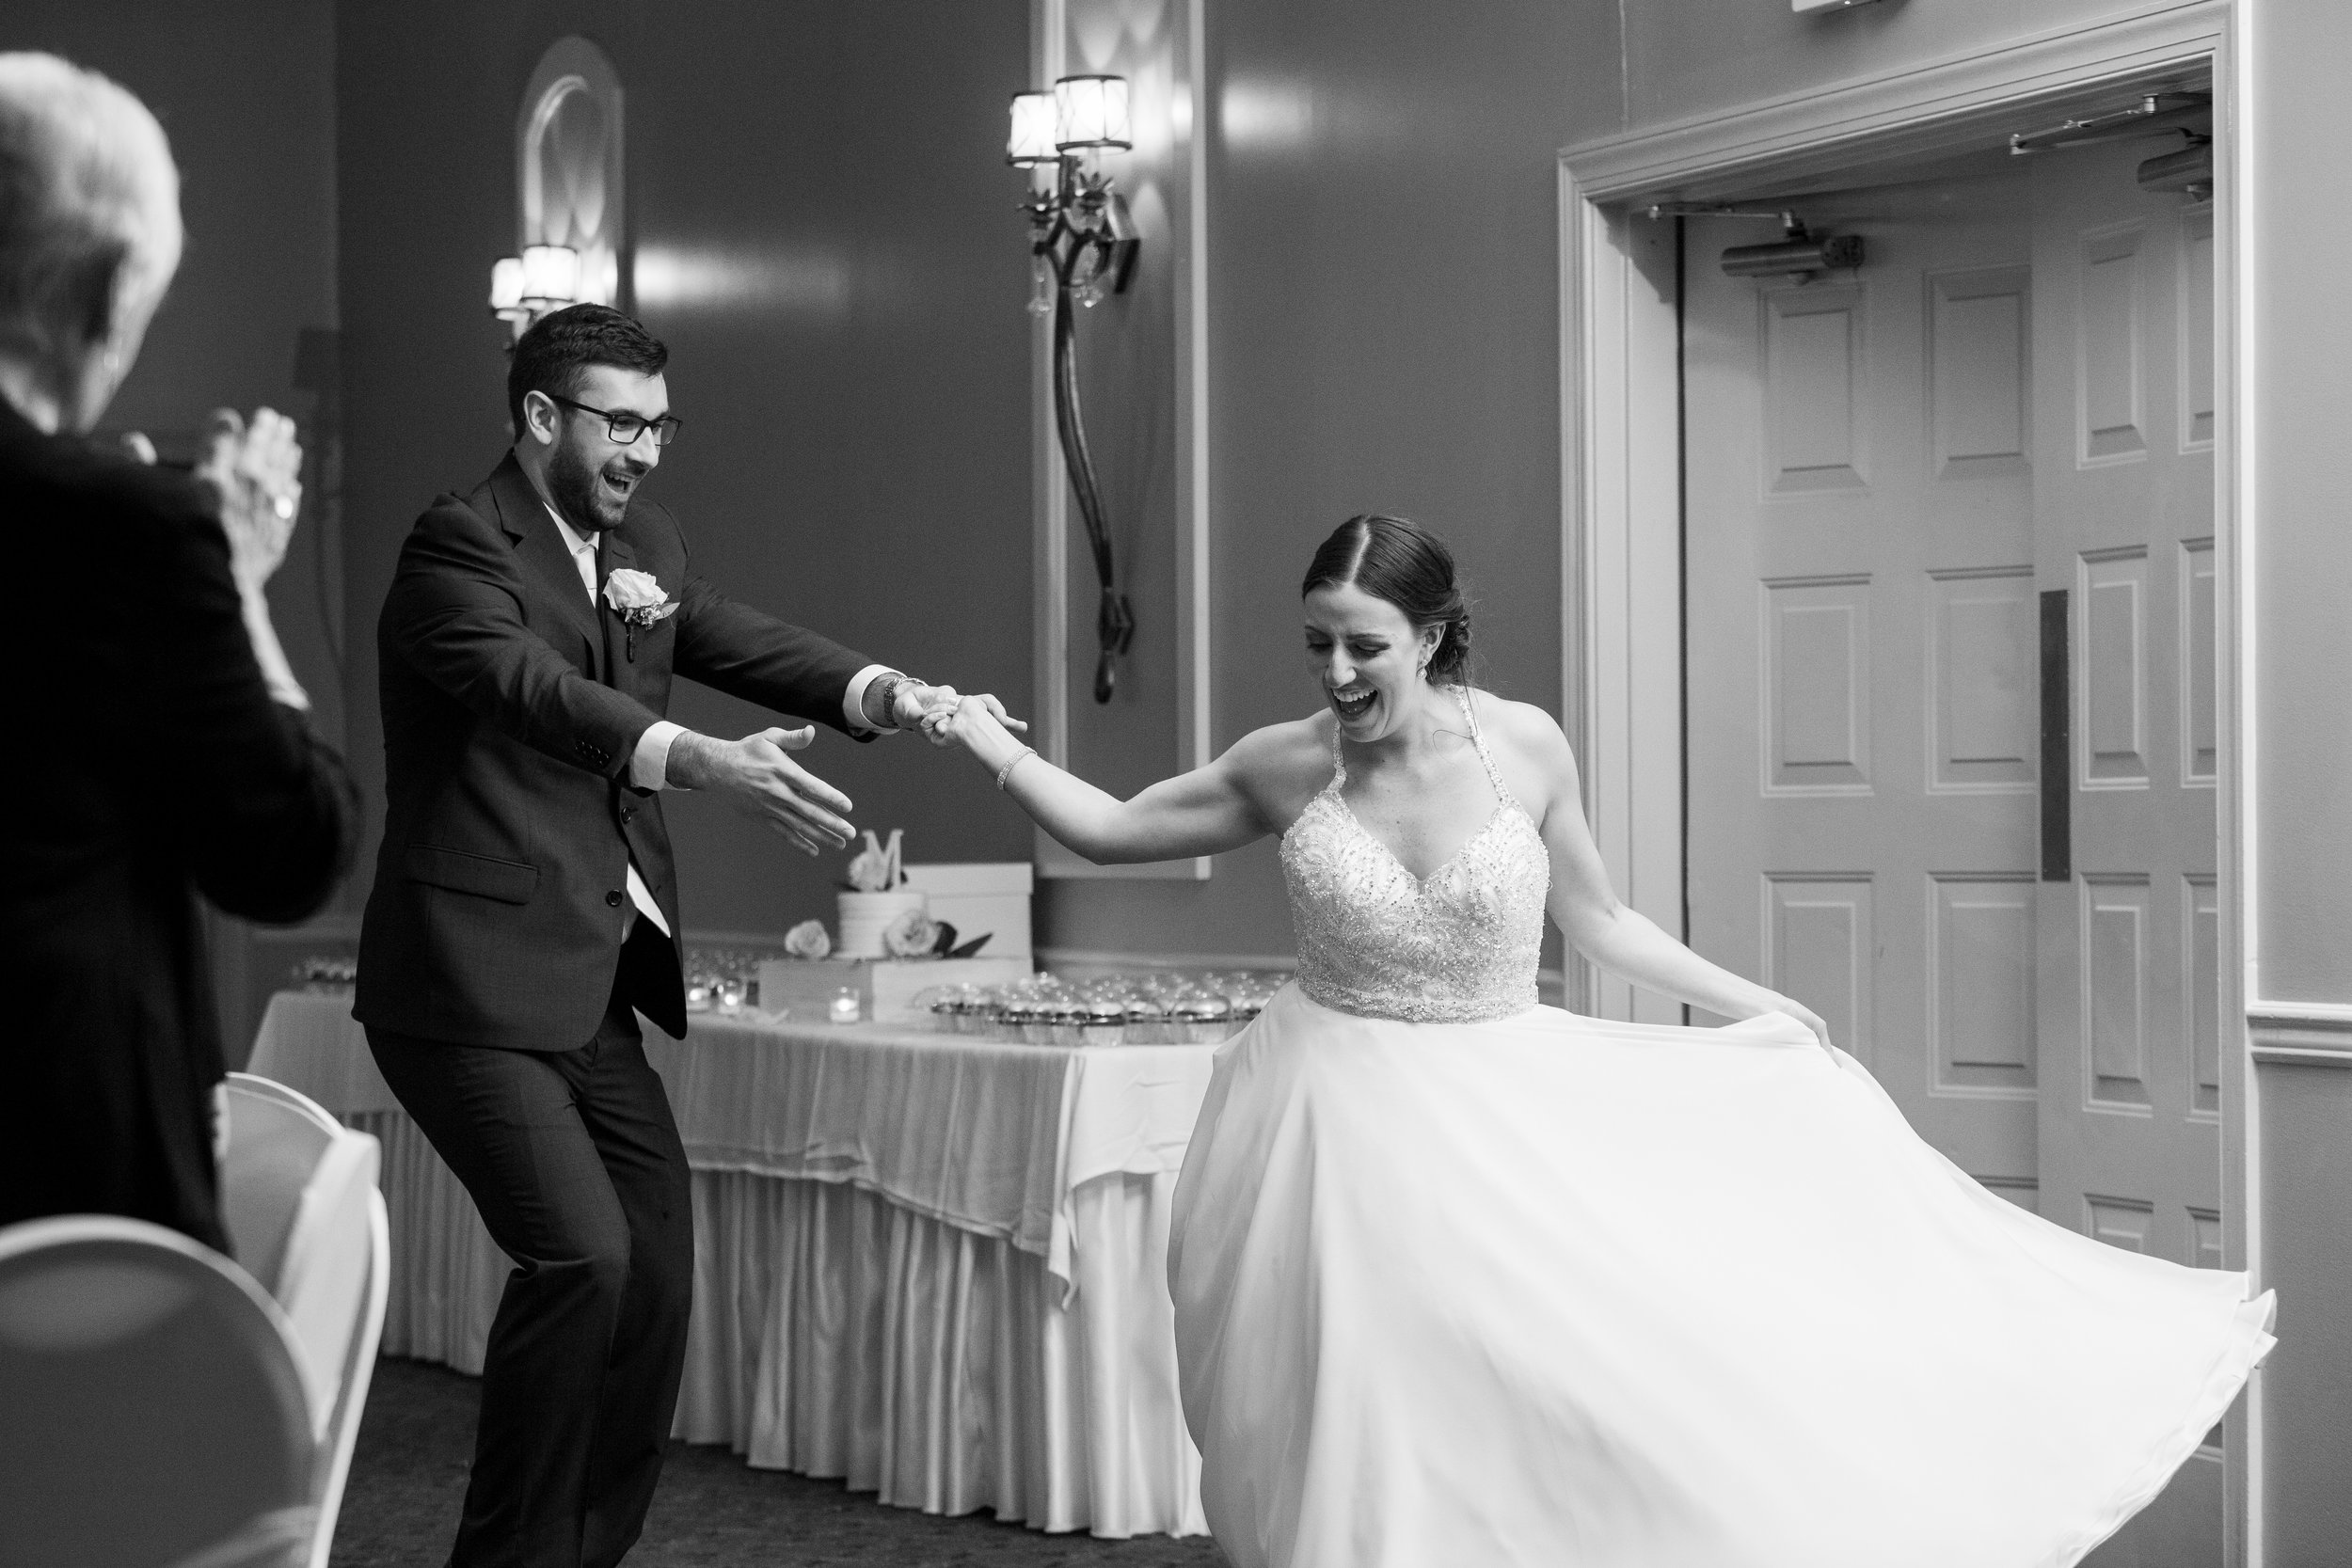 montdale-country-club-wedding-by-leahdanielsphotography59.jpg